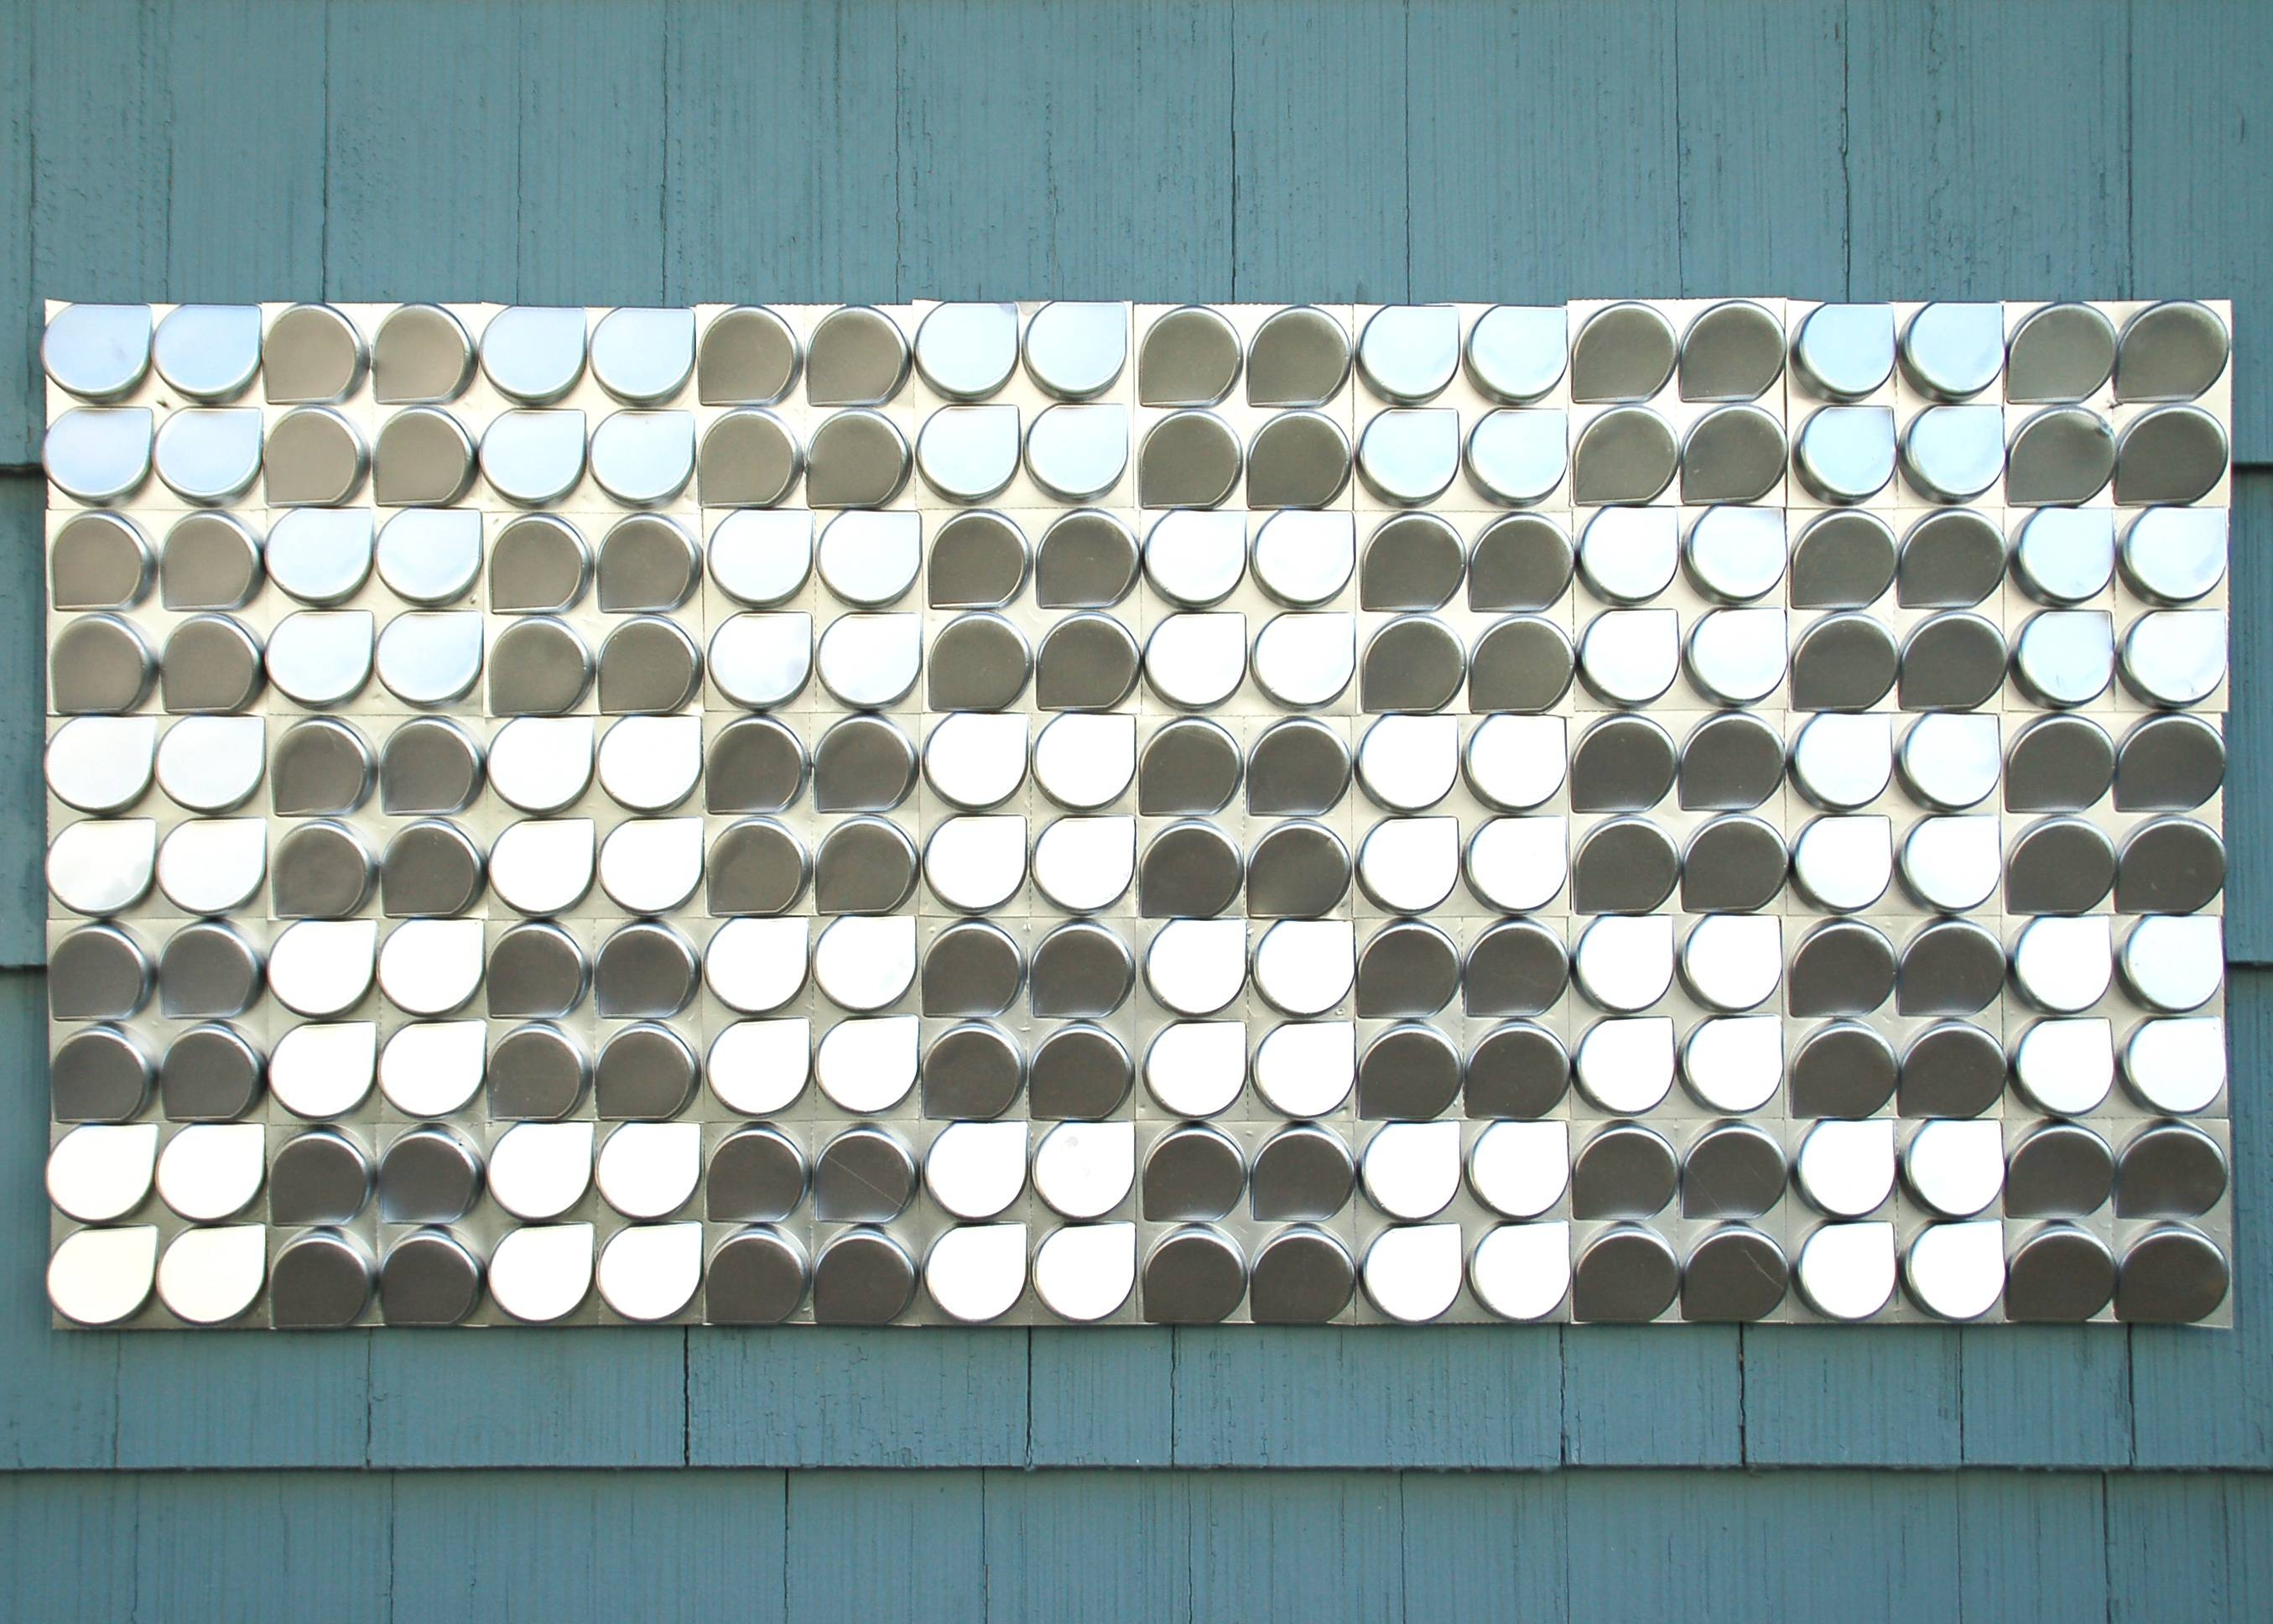 Freecycled Outdoor Wall Art | Ideas Realized Inside Current Recycled Wall Art (View 12 of 30)